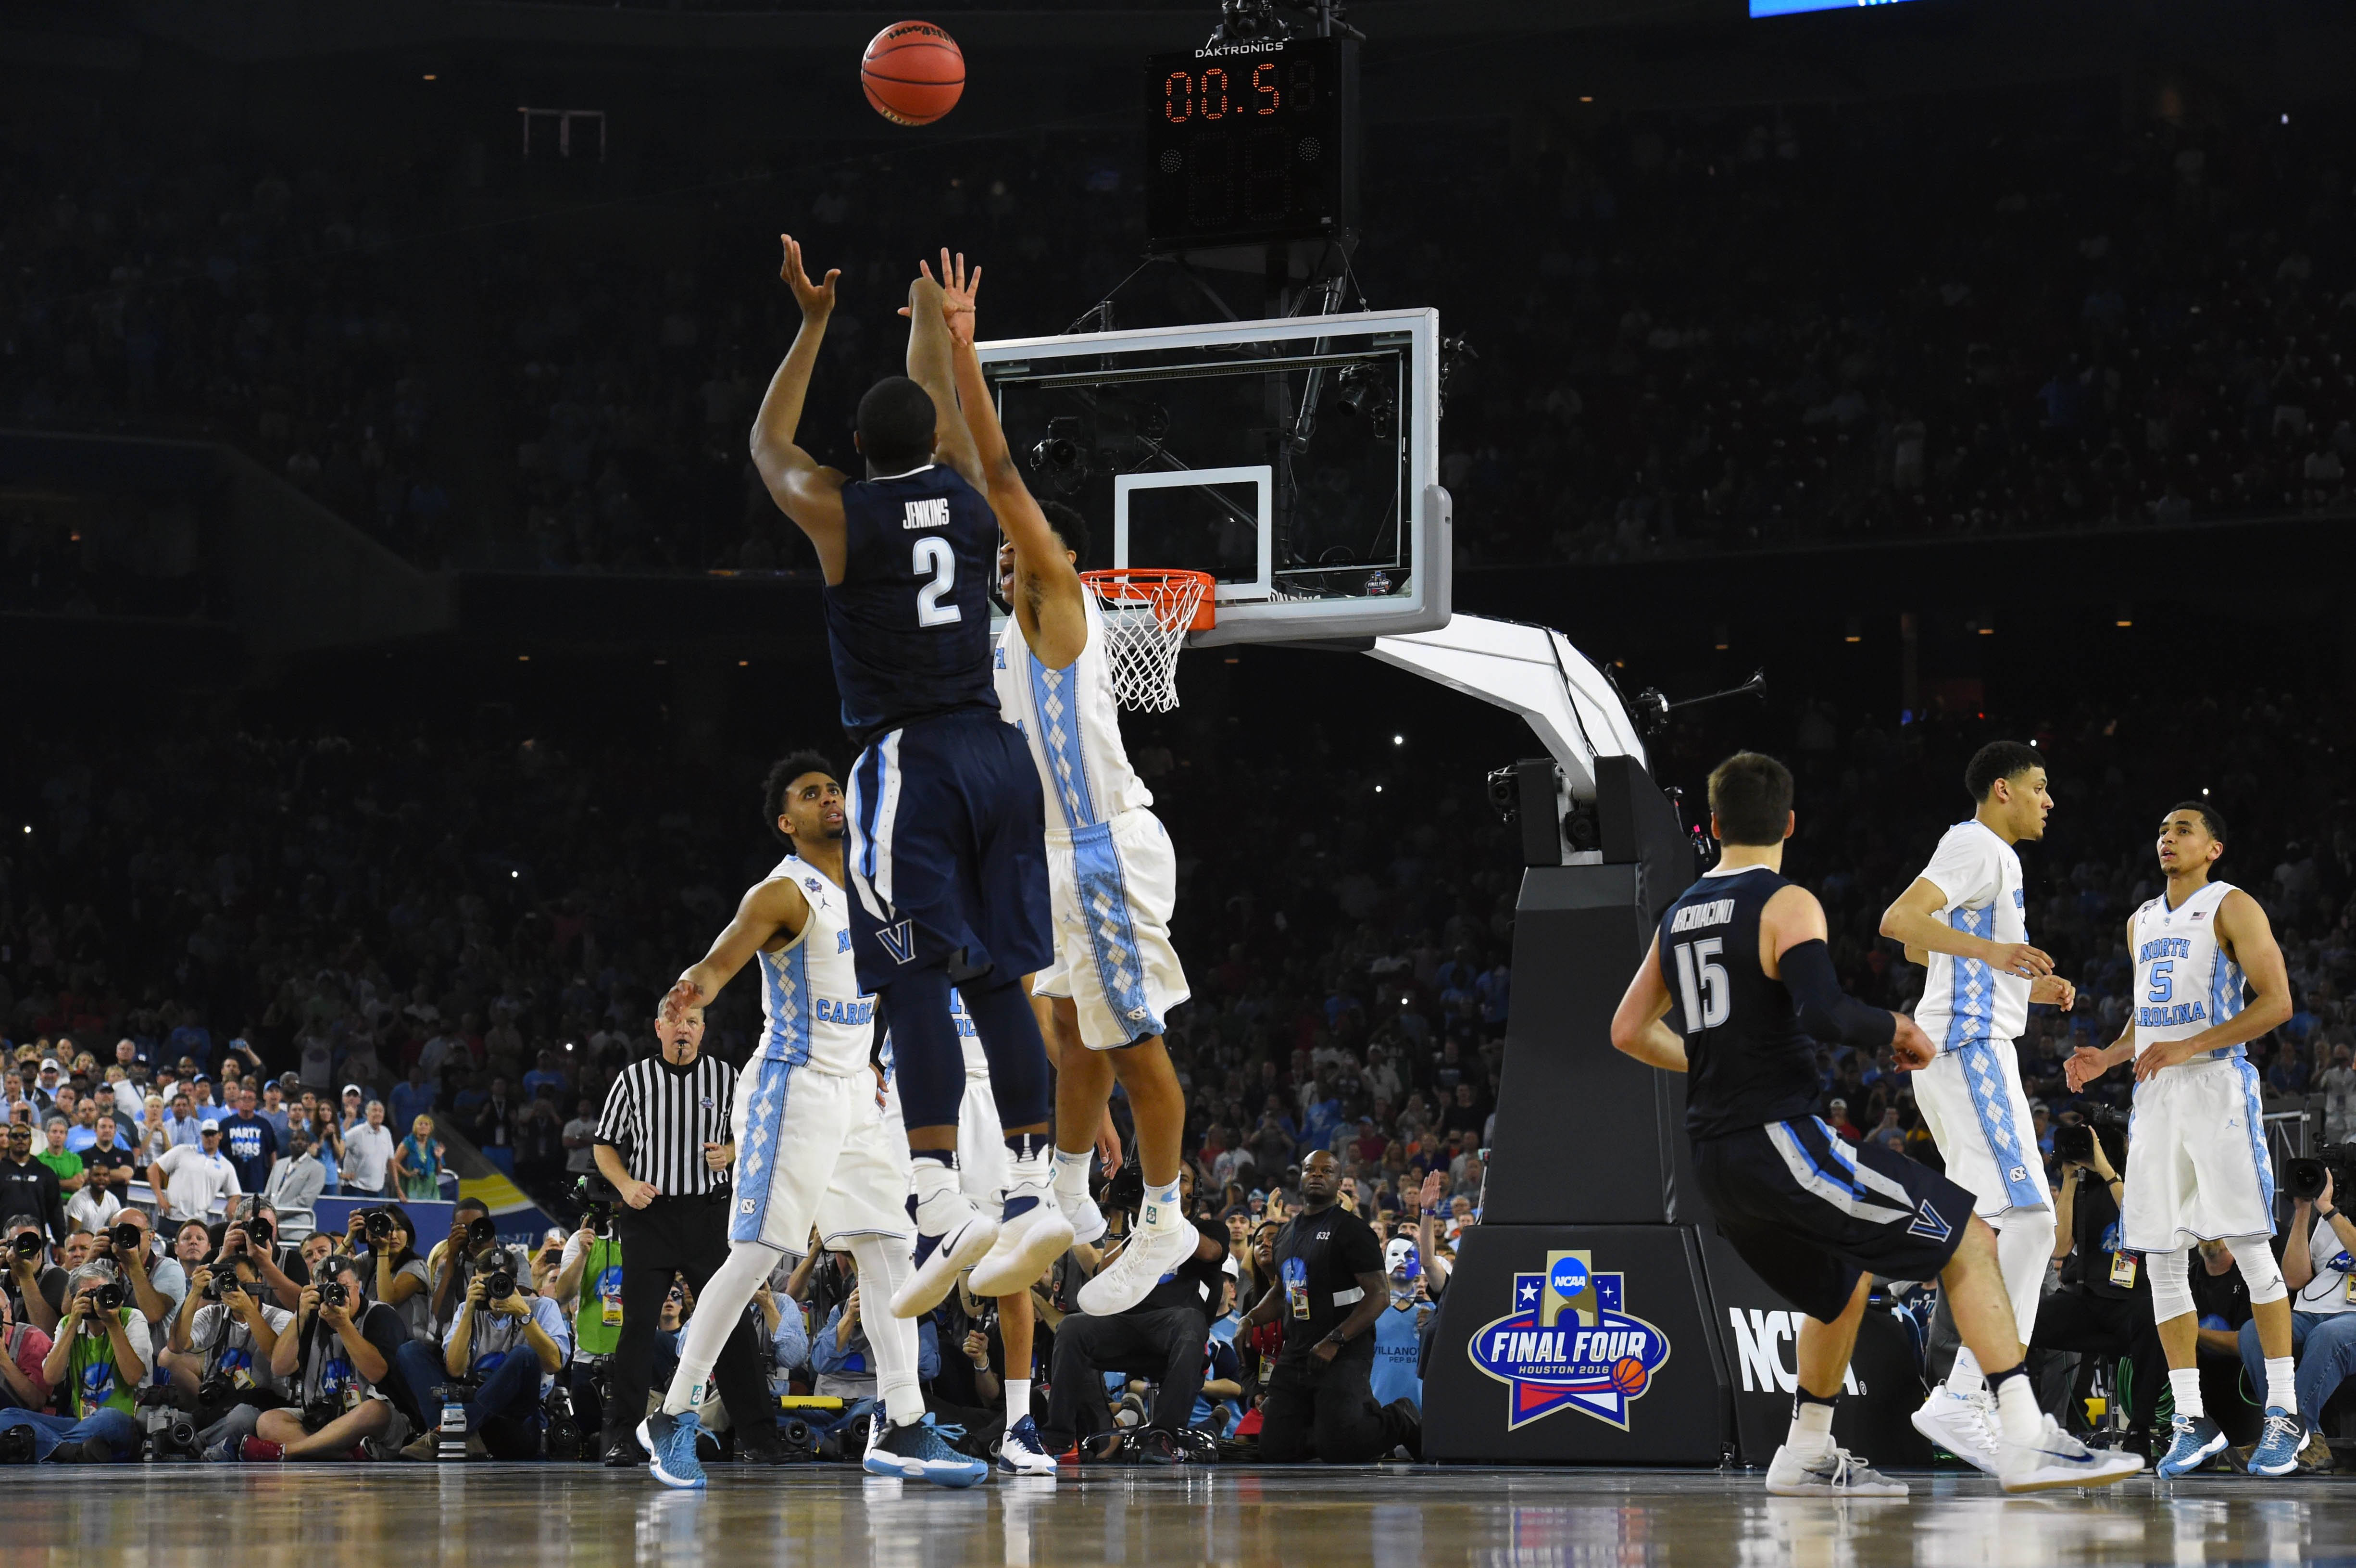 Villanova Wildcats forward Kris Jenkins (2) hits the game winning shot with .6 seconds over North Carolina Tar Heels forward Isaiah Hicks (4) in the championship game of the 2016 NCAA Men's Final Four.